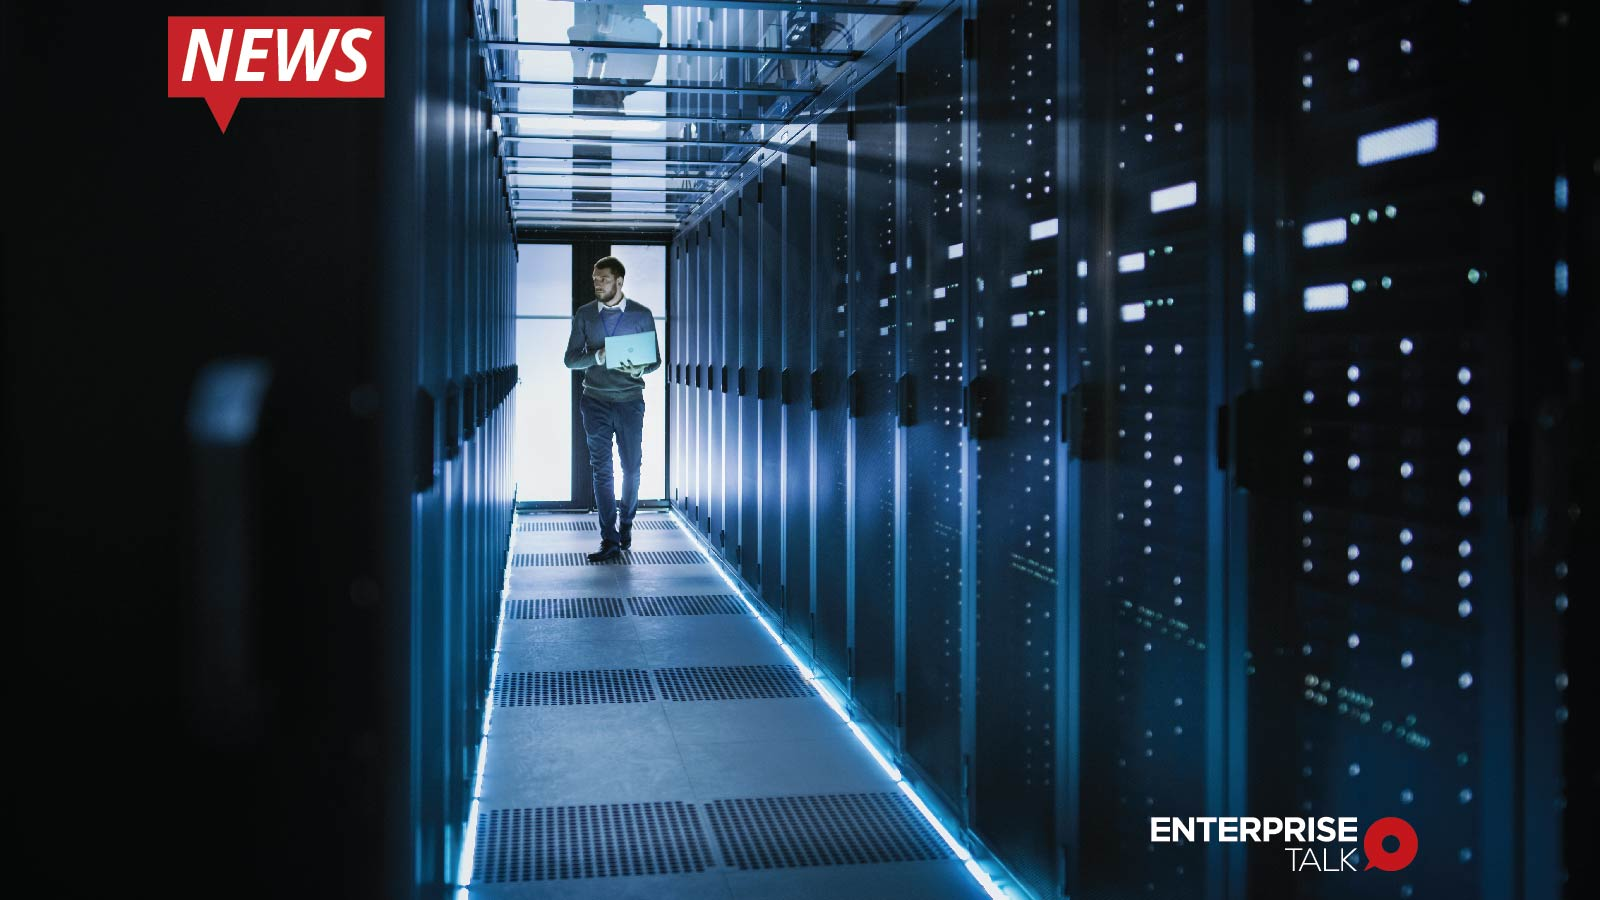 Northern Data AG commissions its first data center in the Netherlands